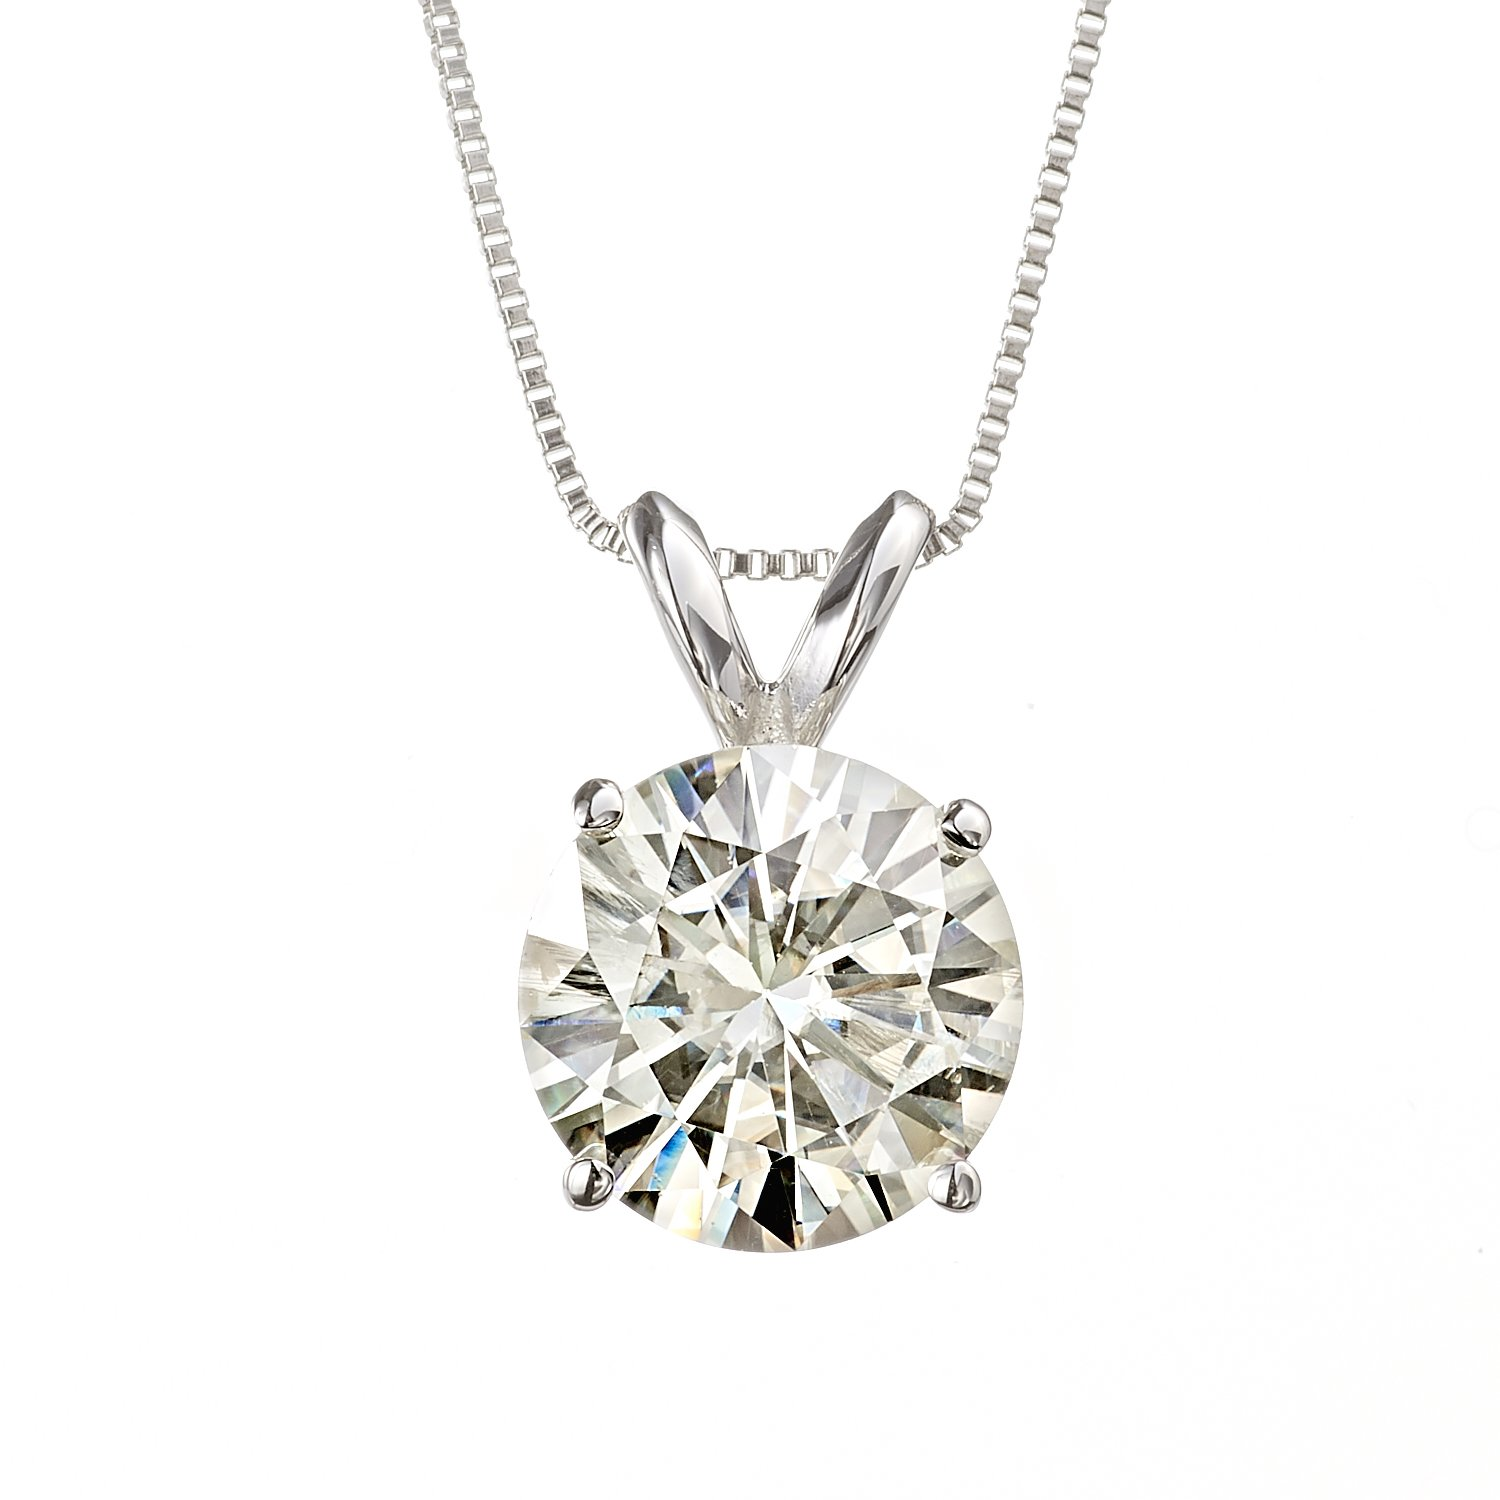 necklace product aesa lauren gn christy moissanite